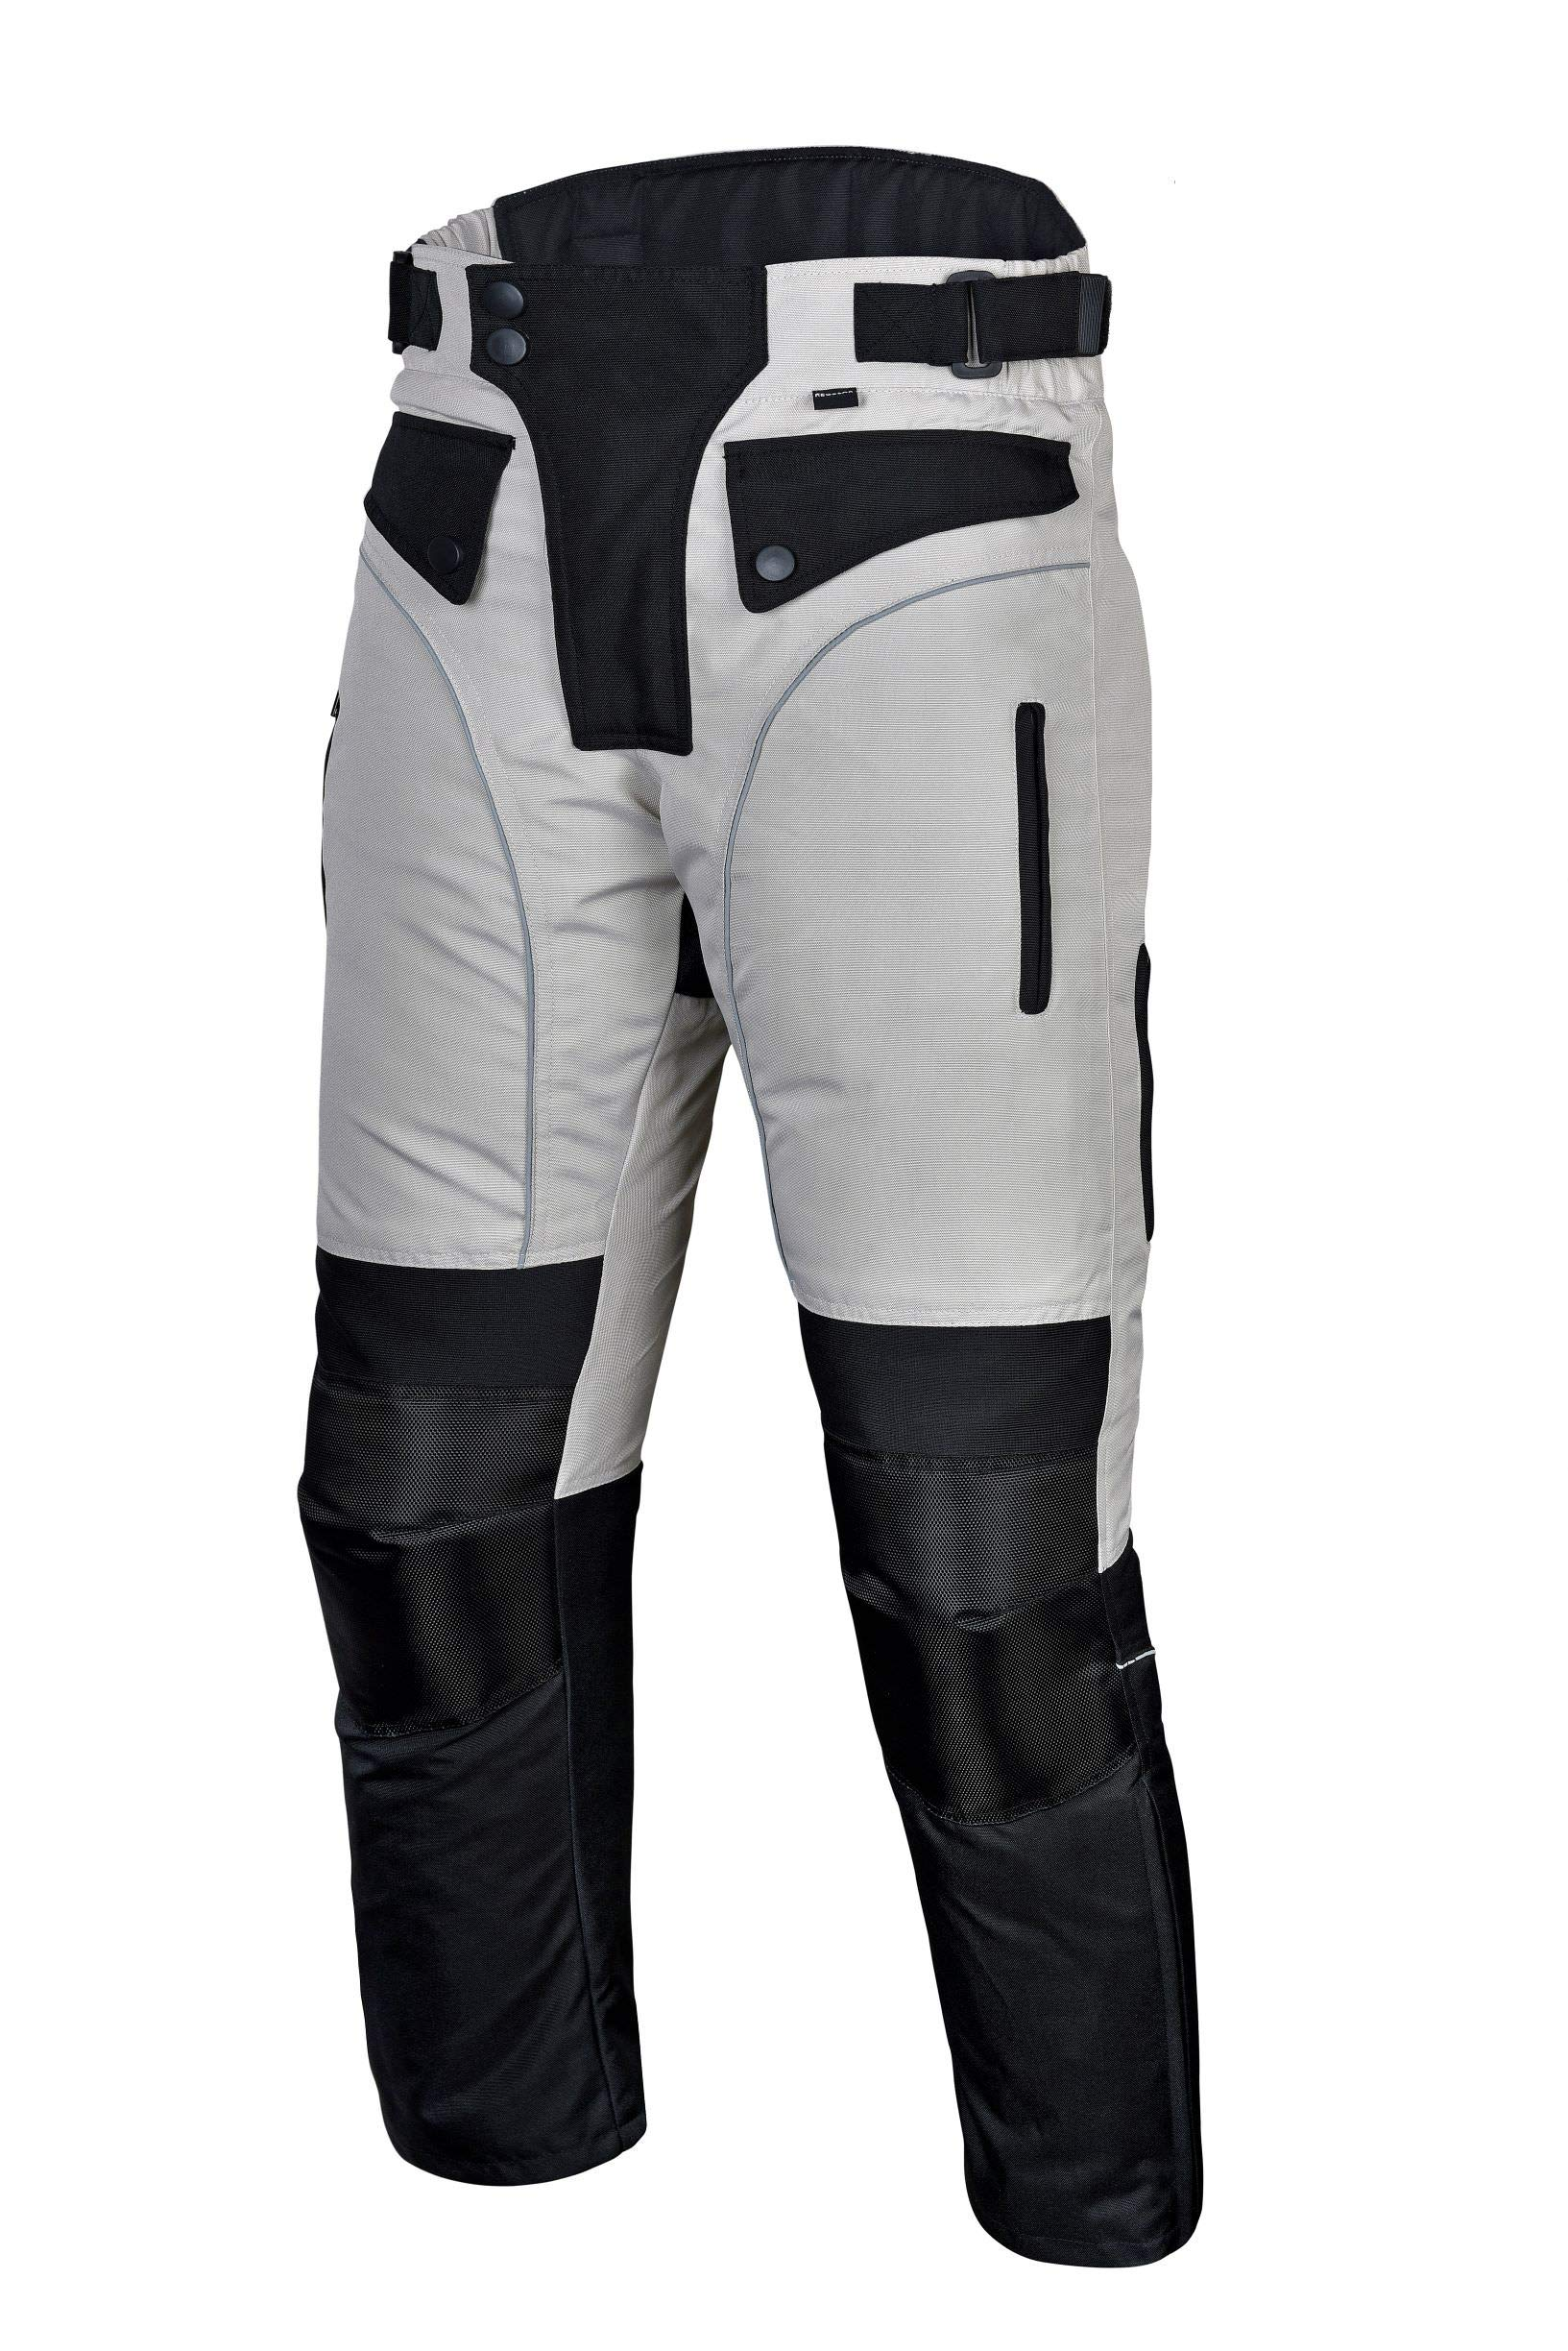 Mens Motorcycle Biker Waterproof, Windproof Riding Pants Gray with Removable CE Armor PT1 (2XL)